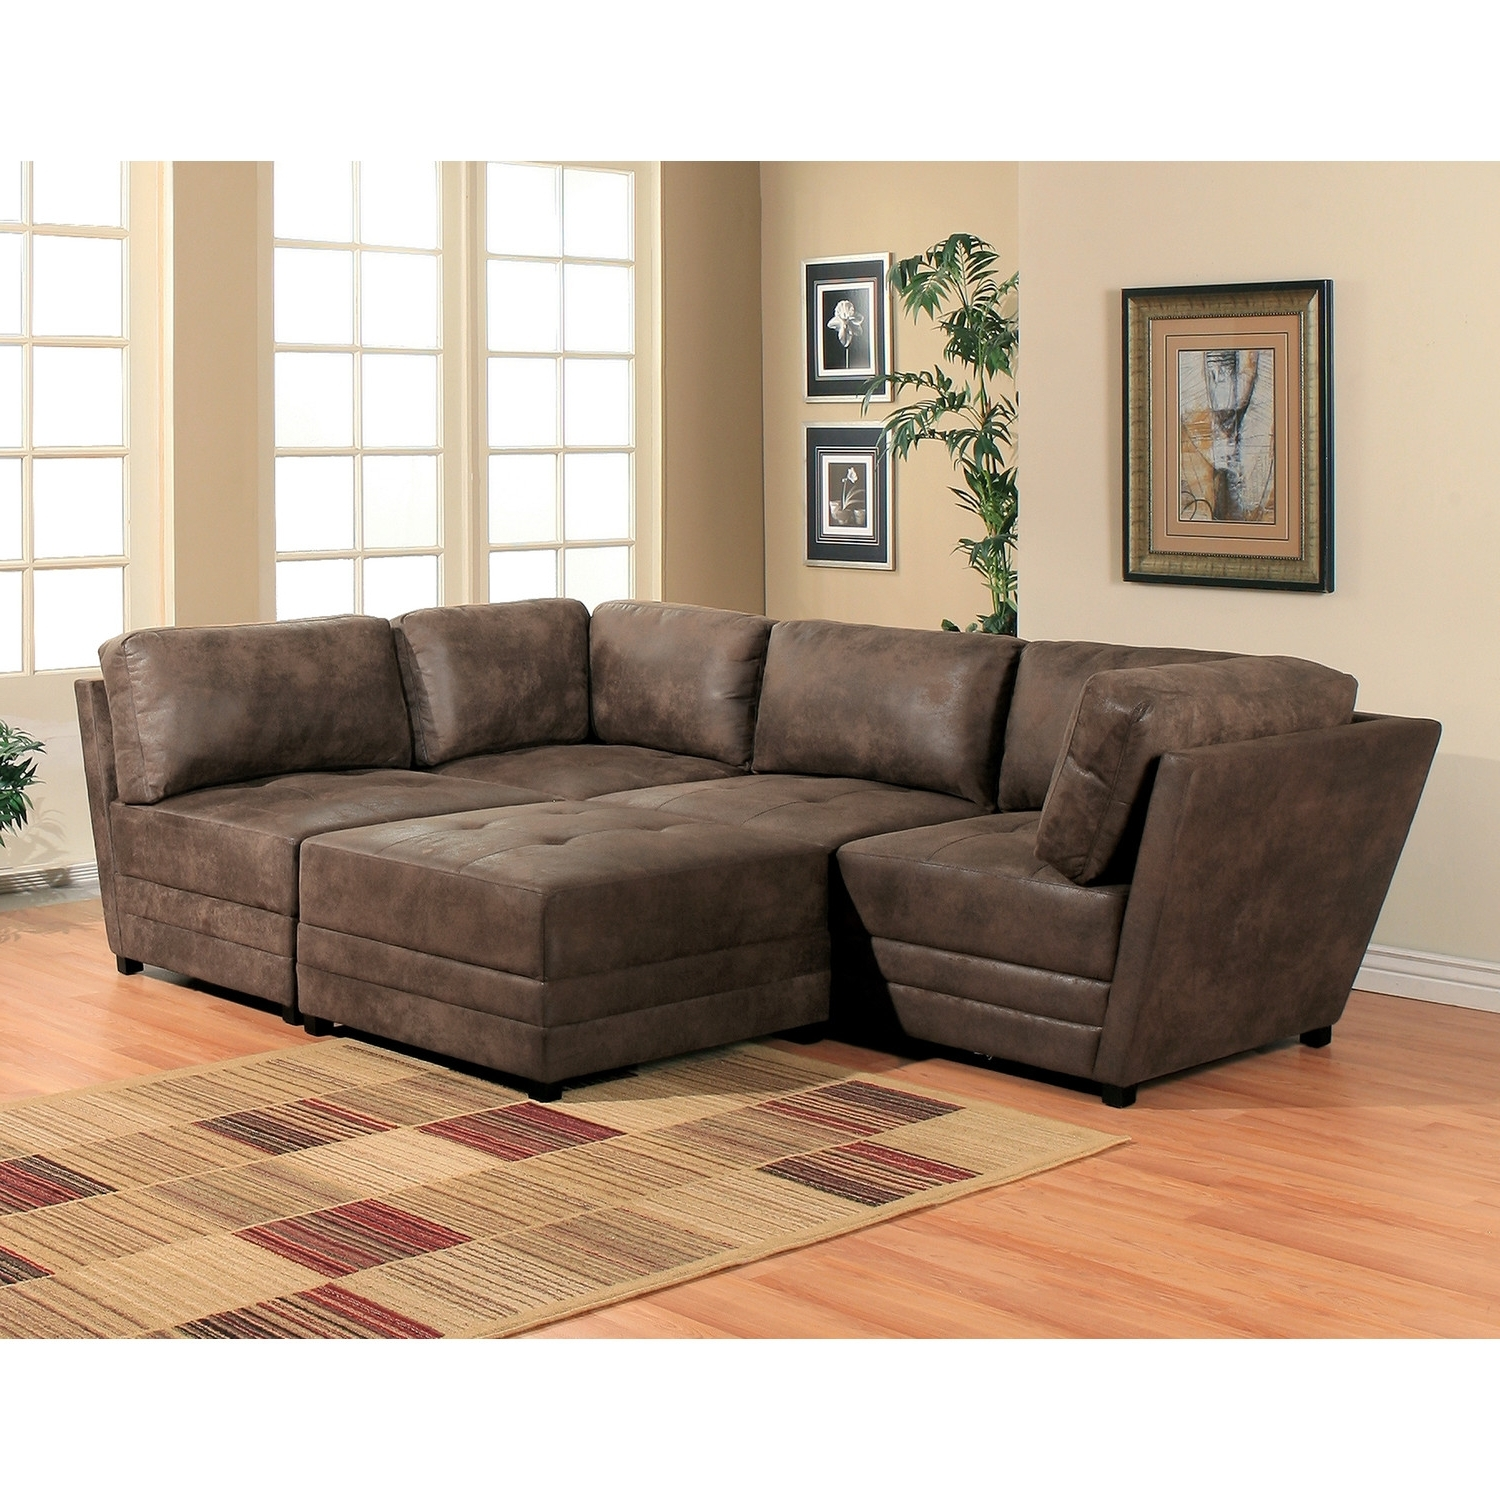 2018 Modular Sectional Sofa With Ottoman – Utilizing Modular Sectional With Modular Sectional Sofas (View 1 of 15)